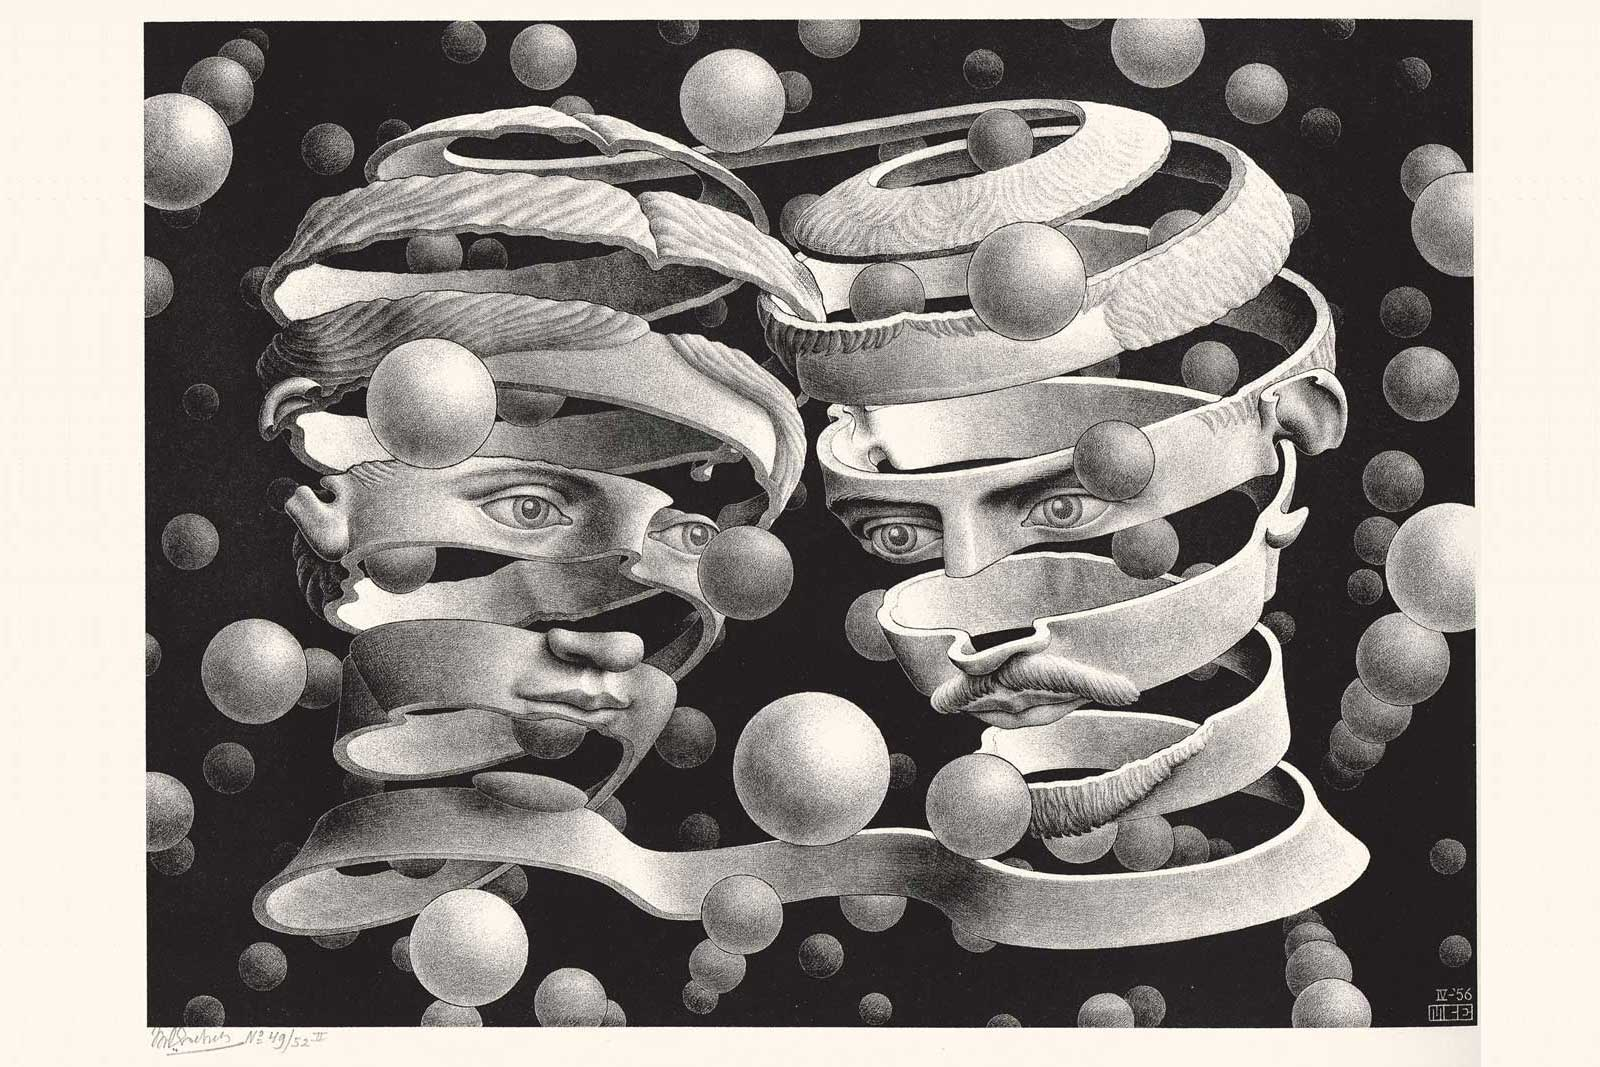 Maurits Cornelis Escher Vincolo d'unione Aprile 1956 Litografia, 25,3x33,9 cm Collezione Giudiceandrea Federico All M.C. Escher works © 2016 The M.C. Escher Company. All rights reserved www.mcescher.com